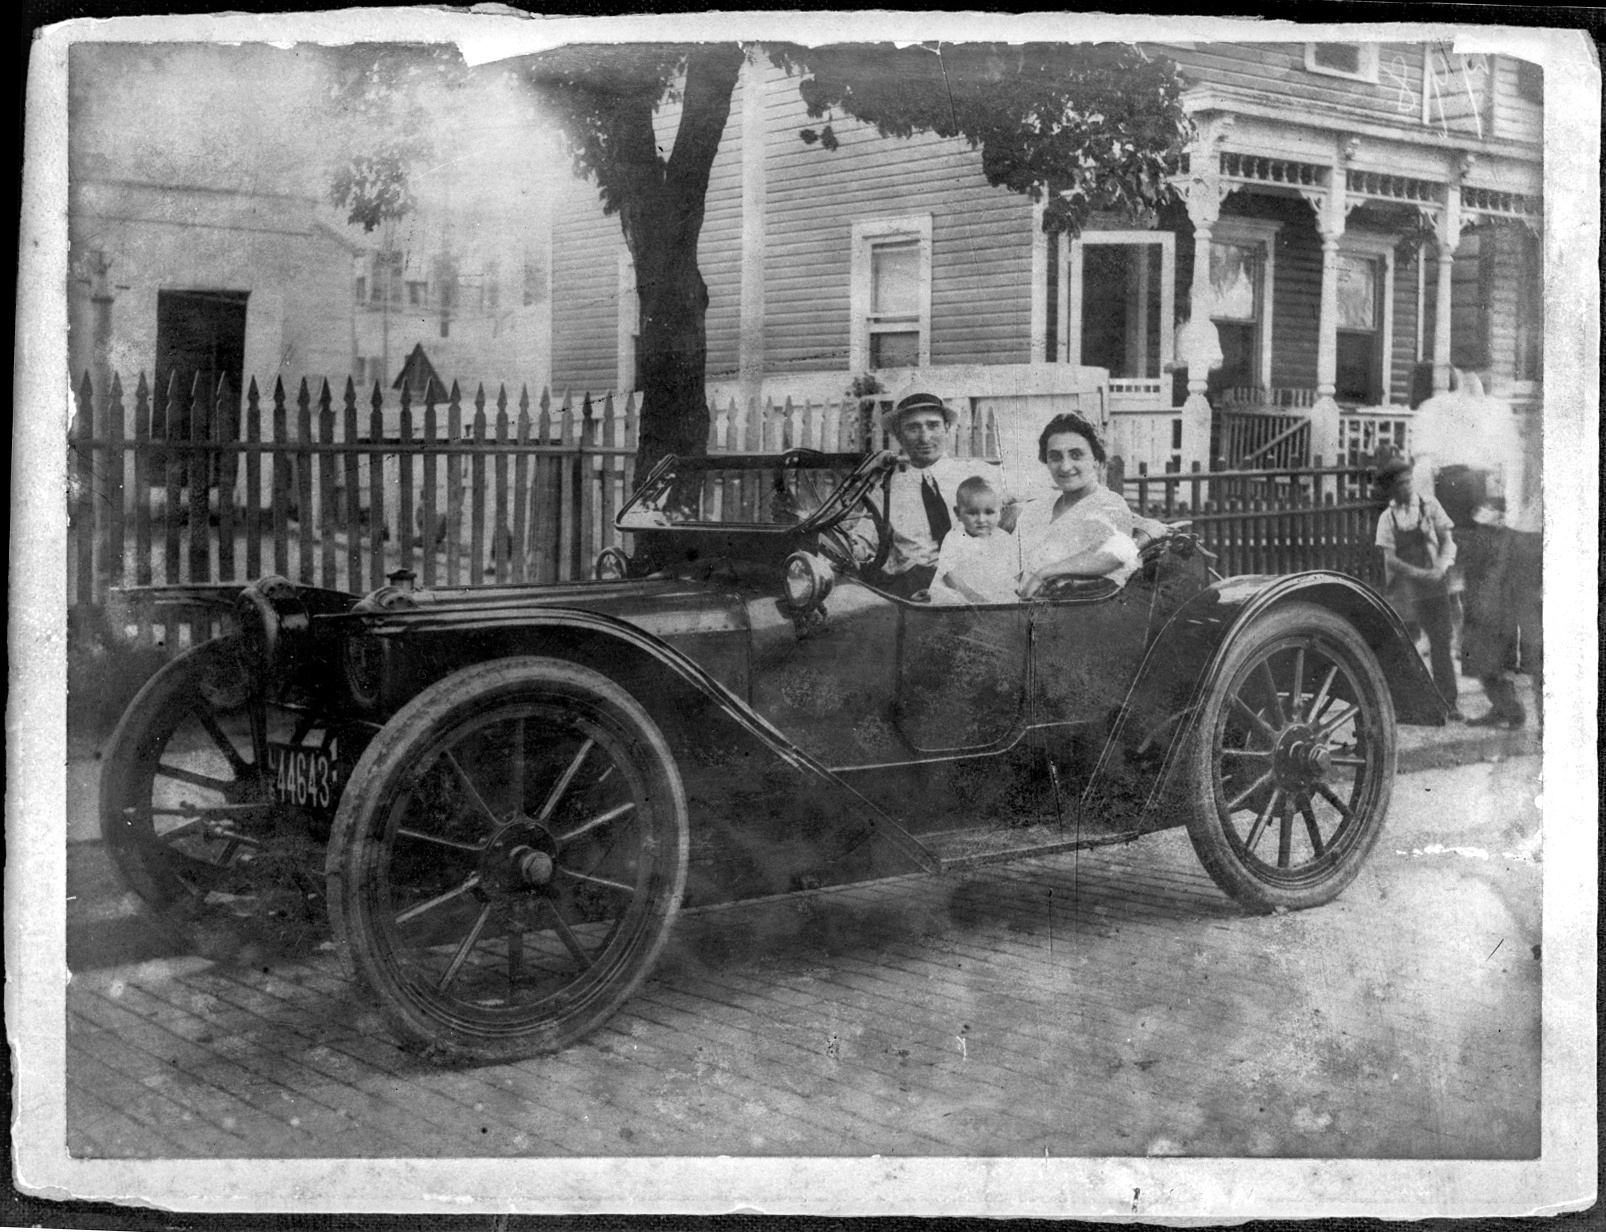 ~1916 Bayonne, NJ  Joseph Acquiste, wife Lucy, and first child Mildred.